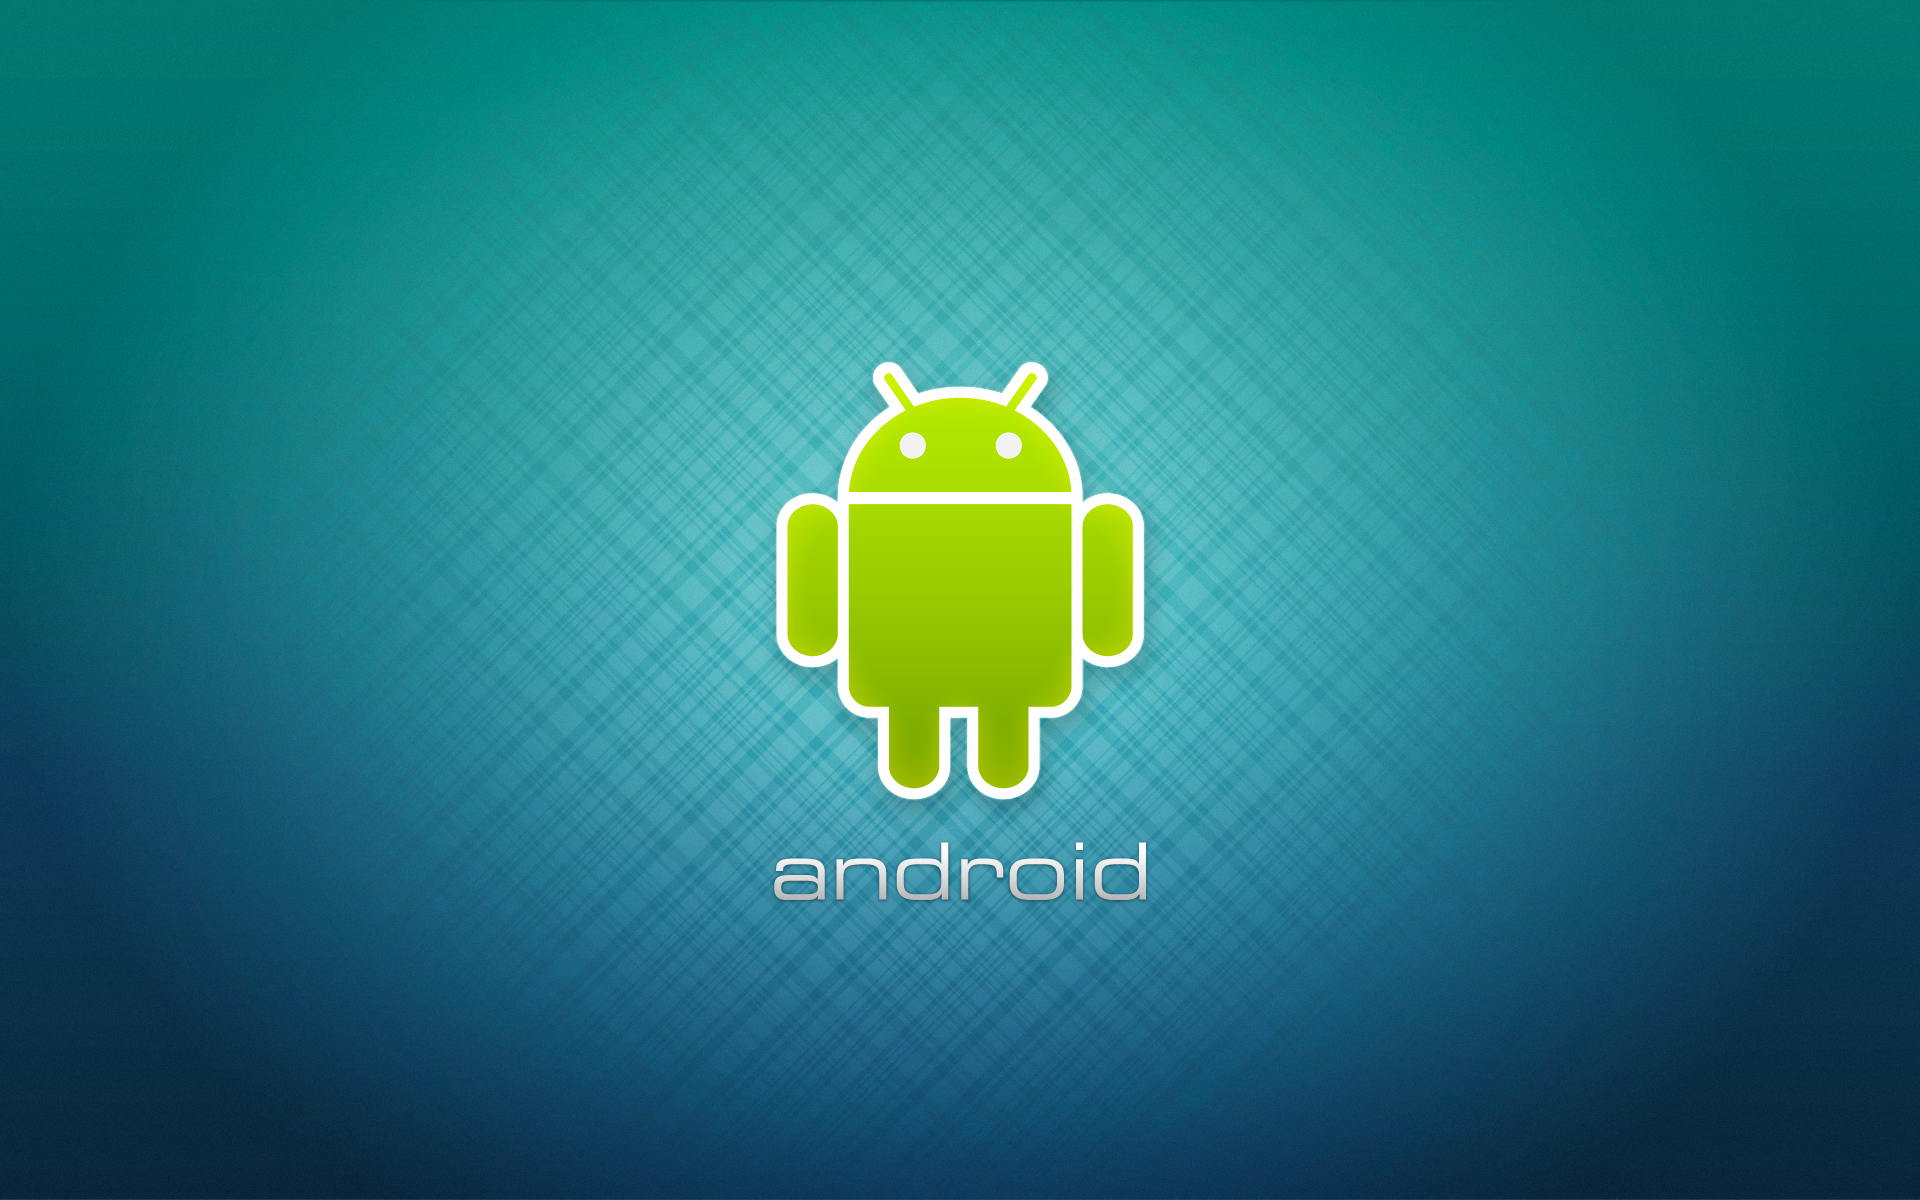 Android Wallpaper 1920x1200